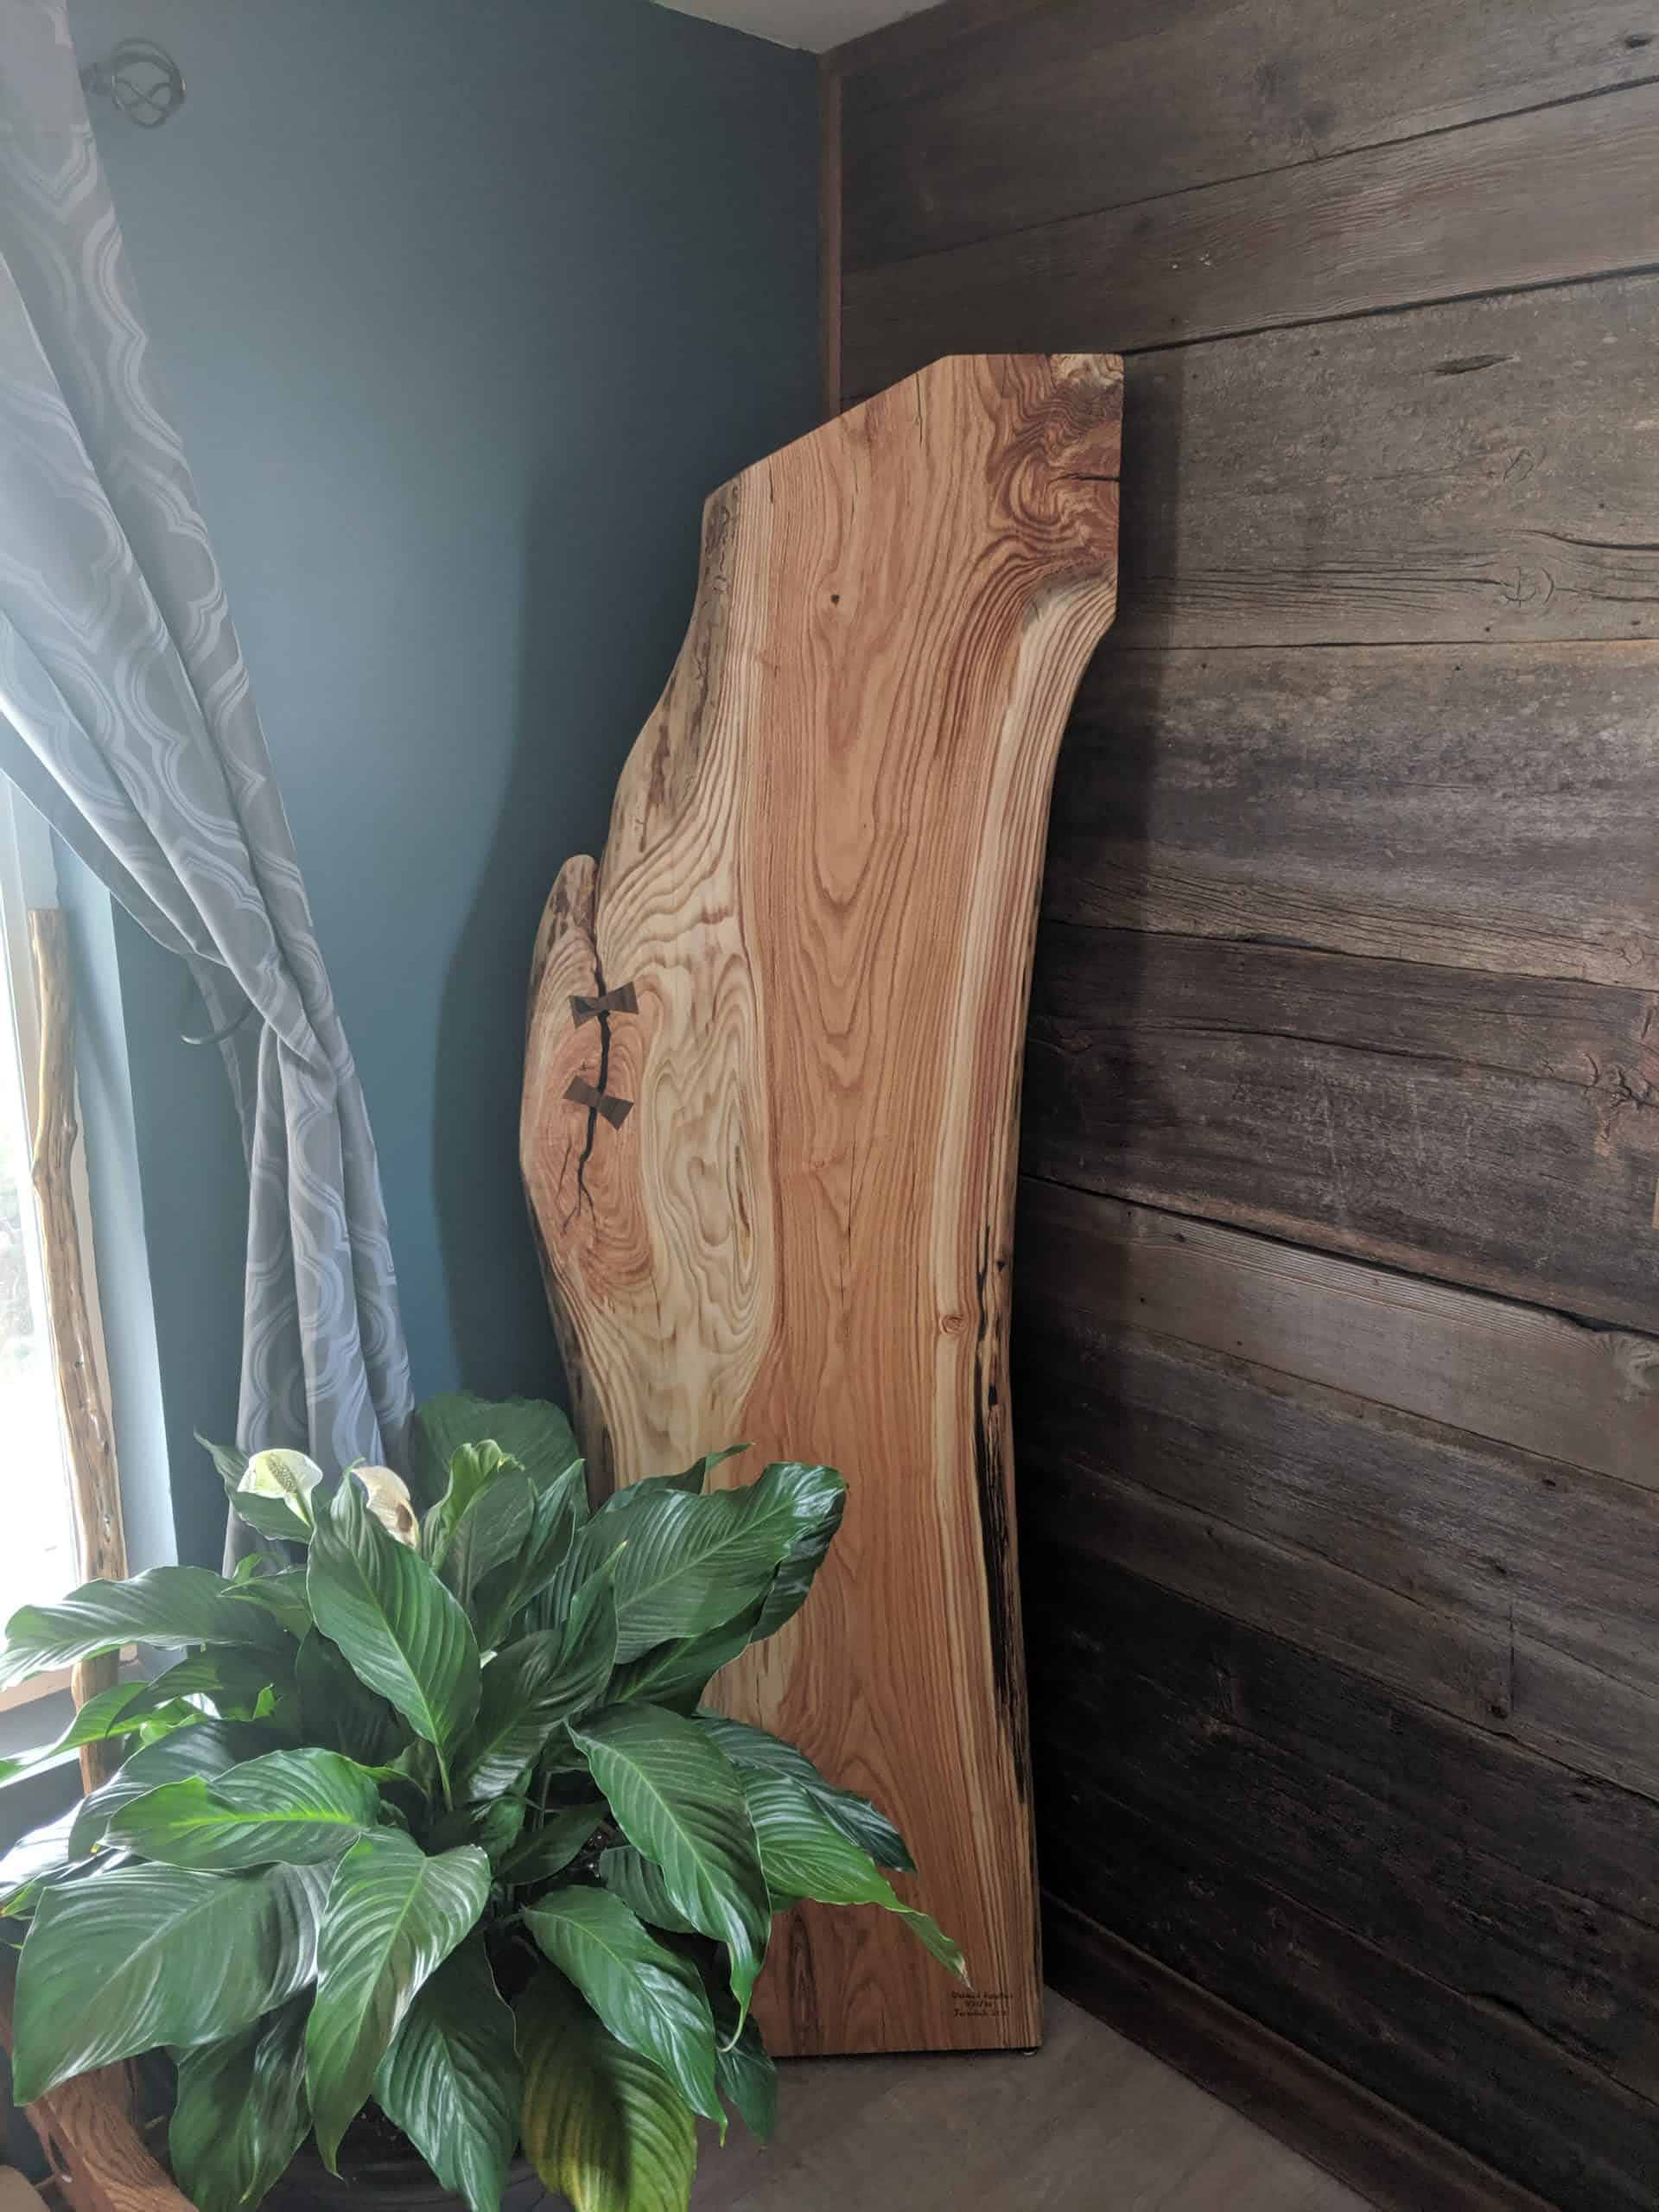 Wood stain - Interior Design Services